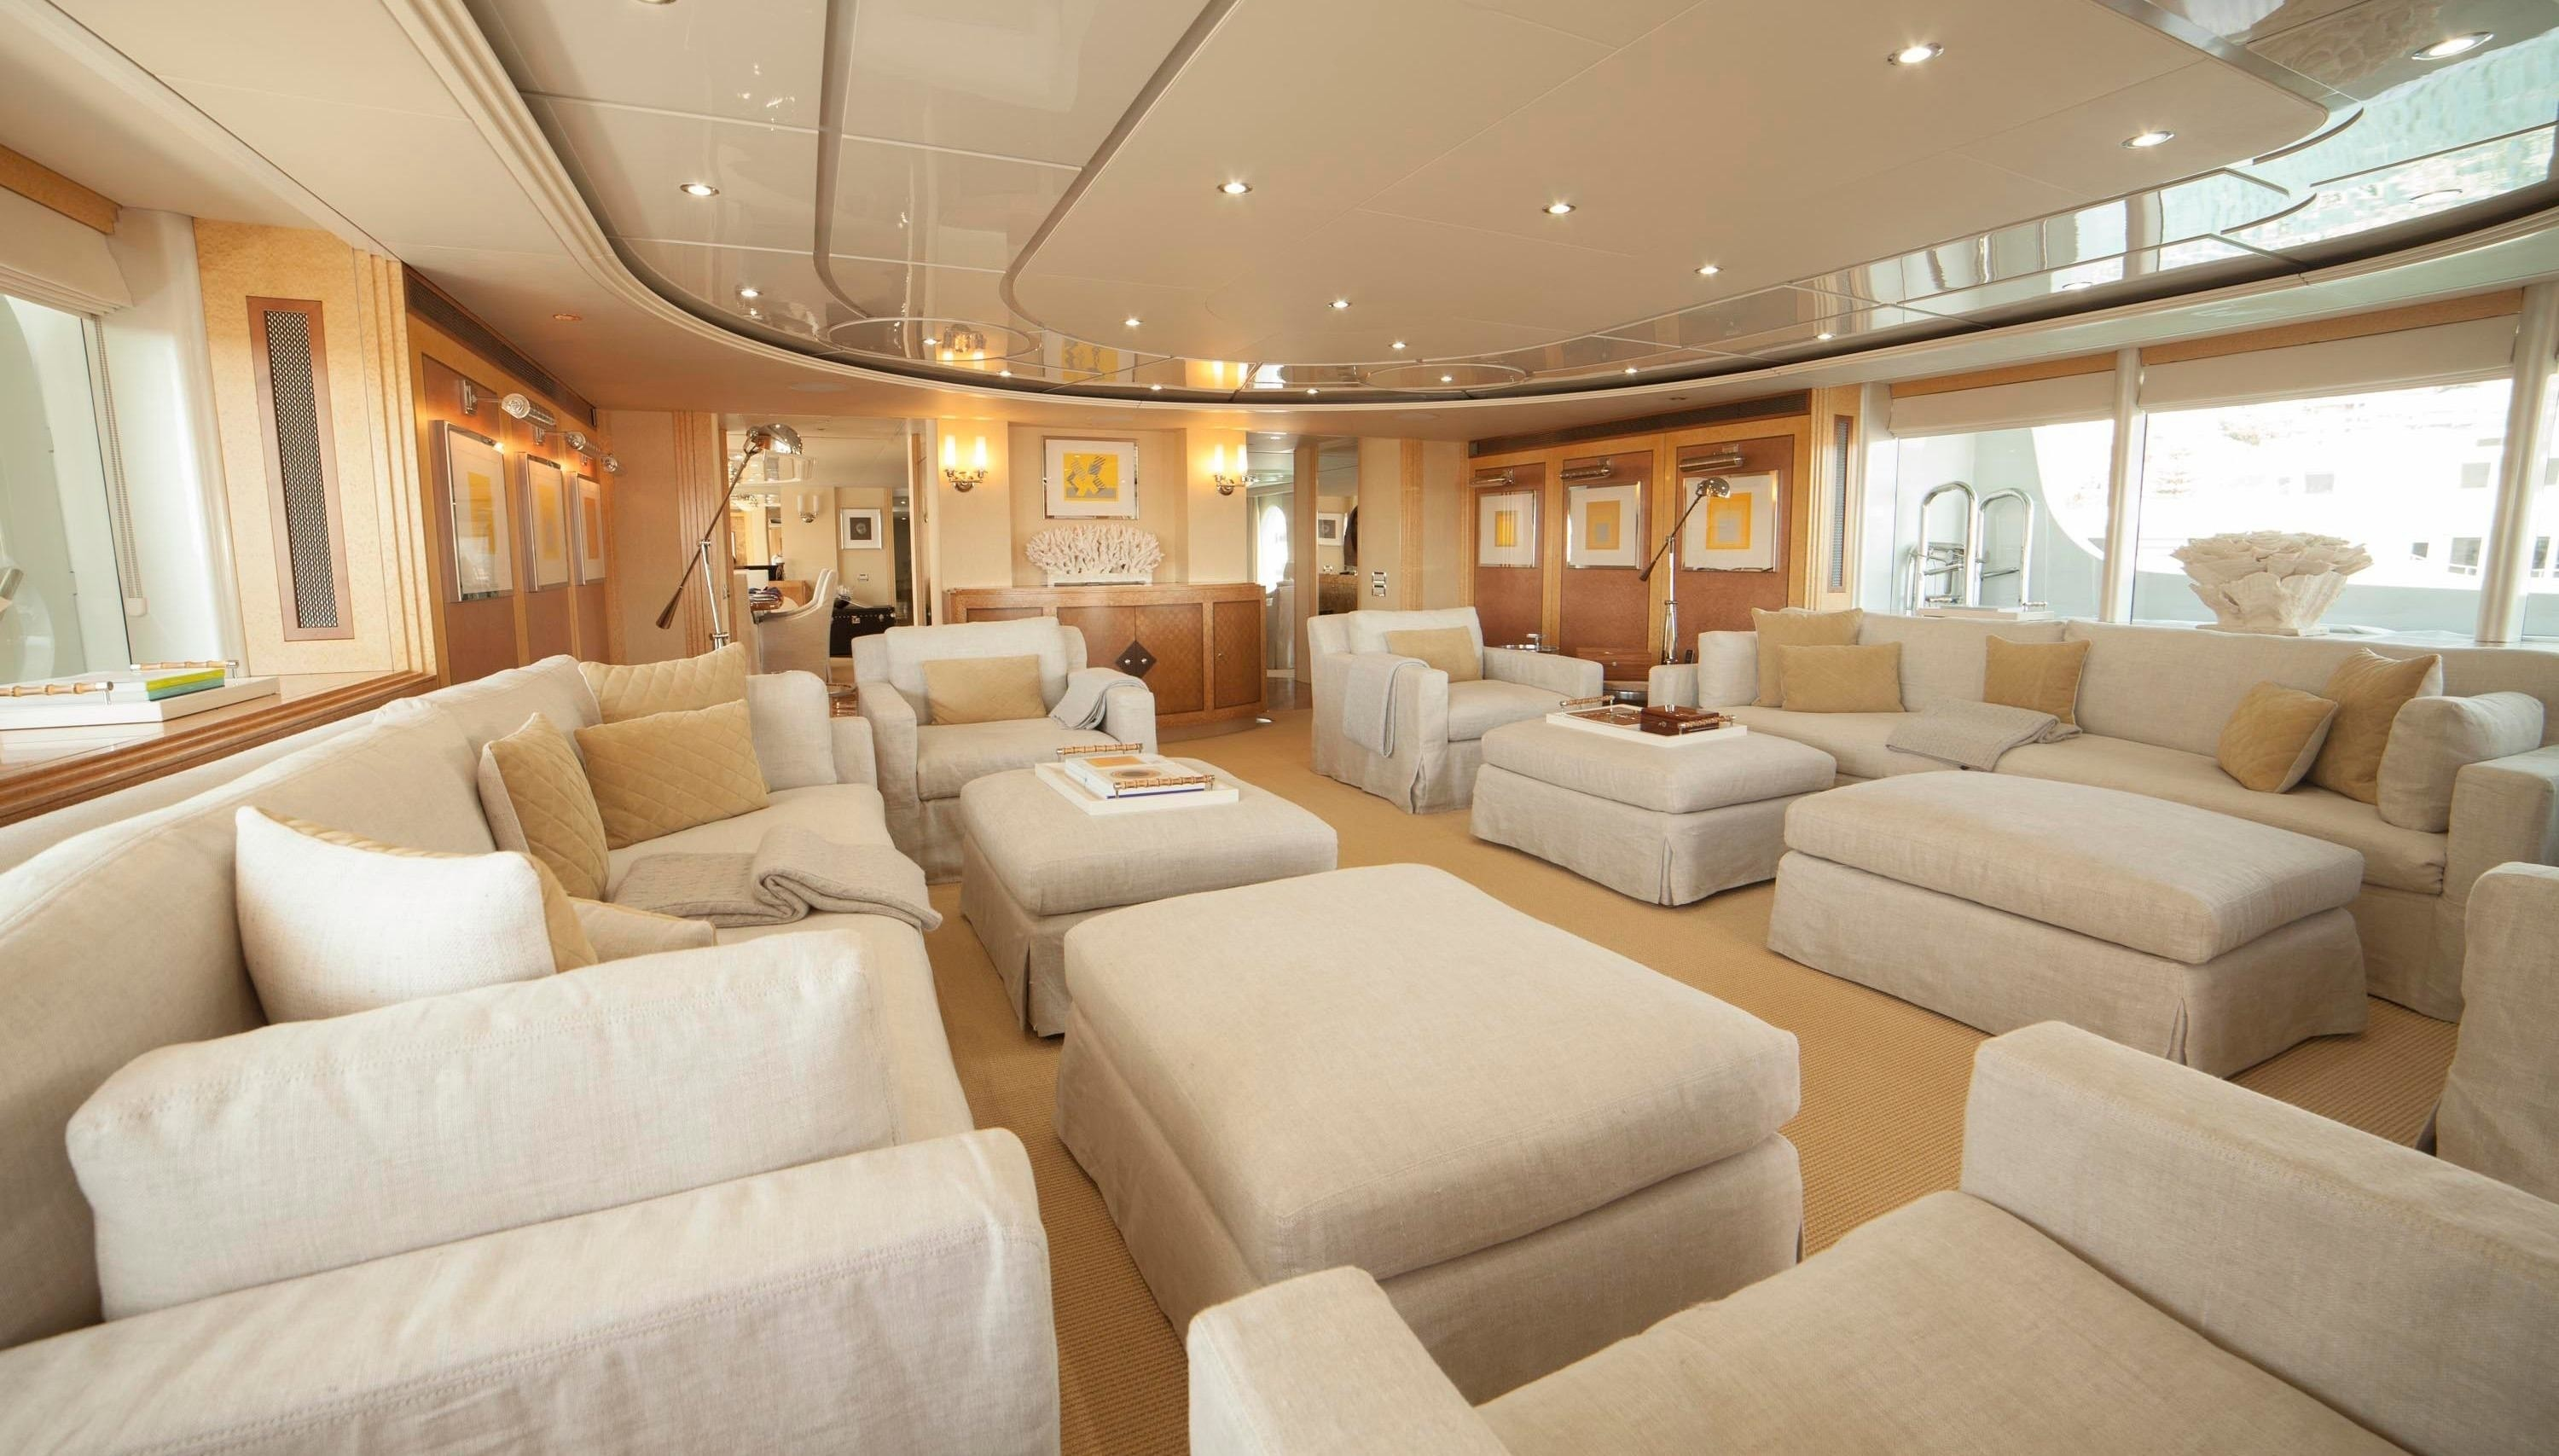 Spacious saloon with comfortable furnishings